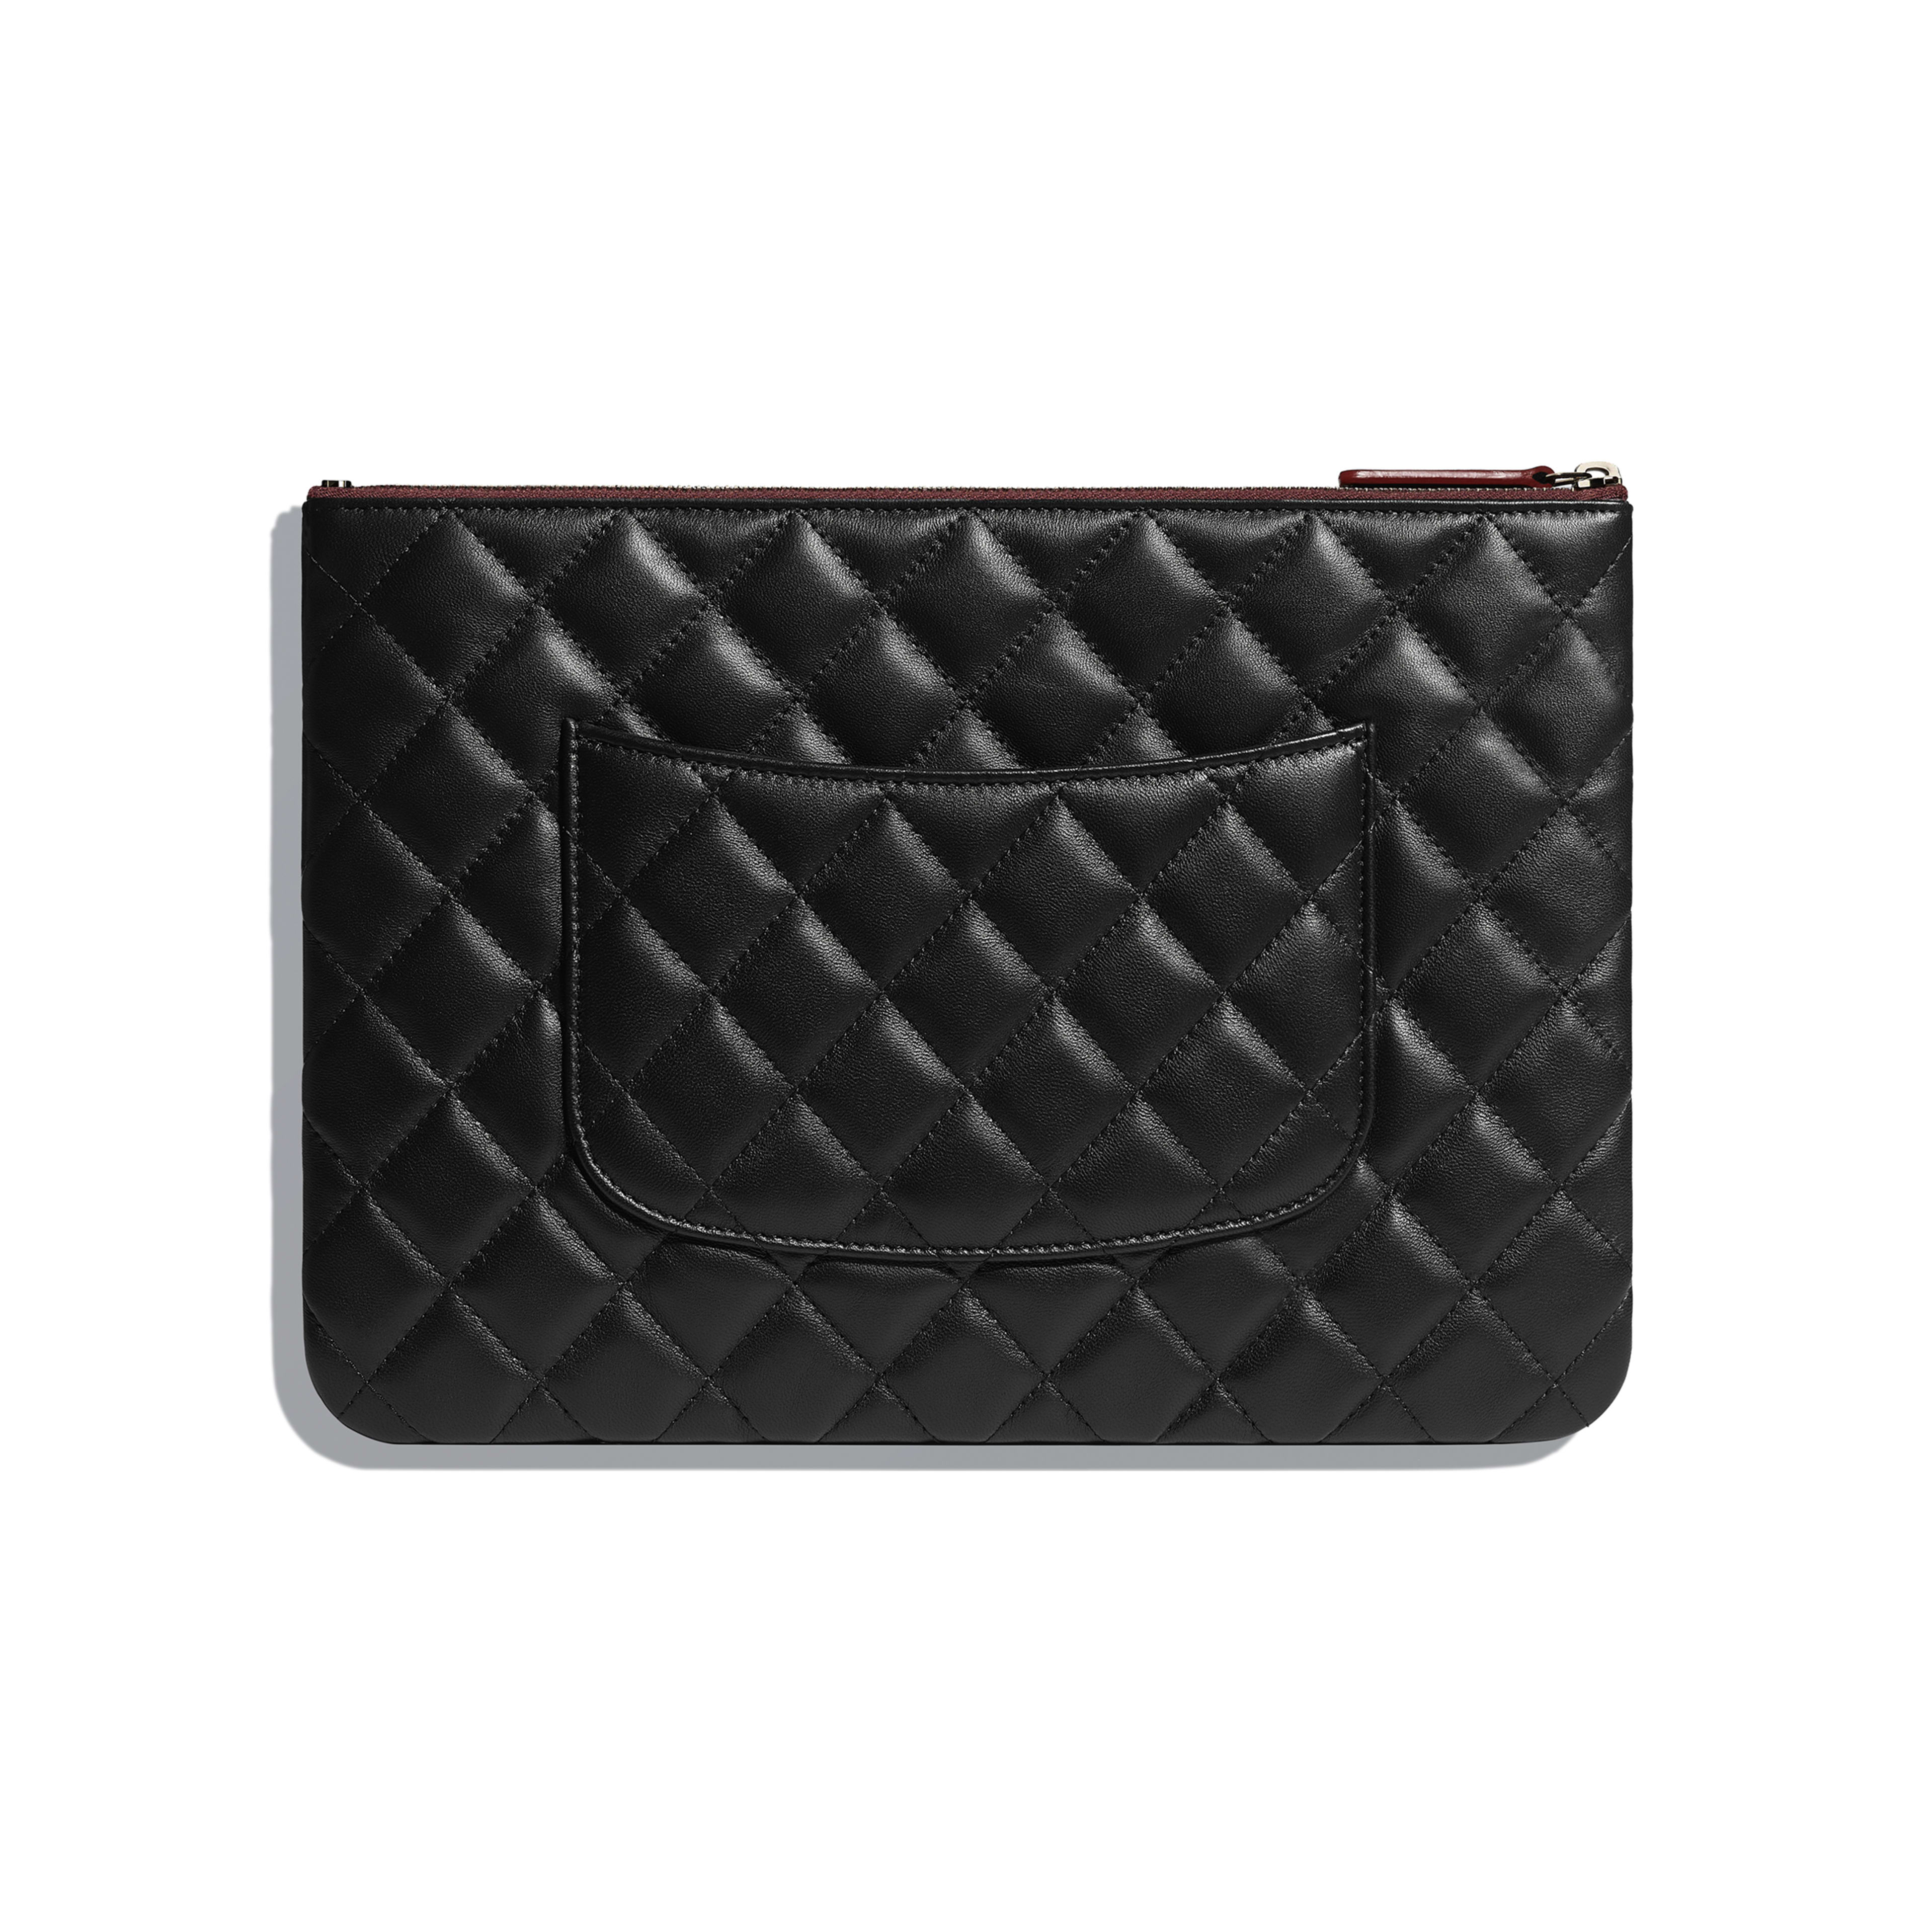 Classic Pouch - Black - Lambskin - Alternative view - see full sized version